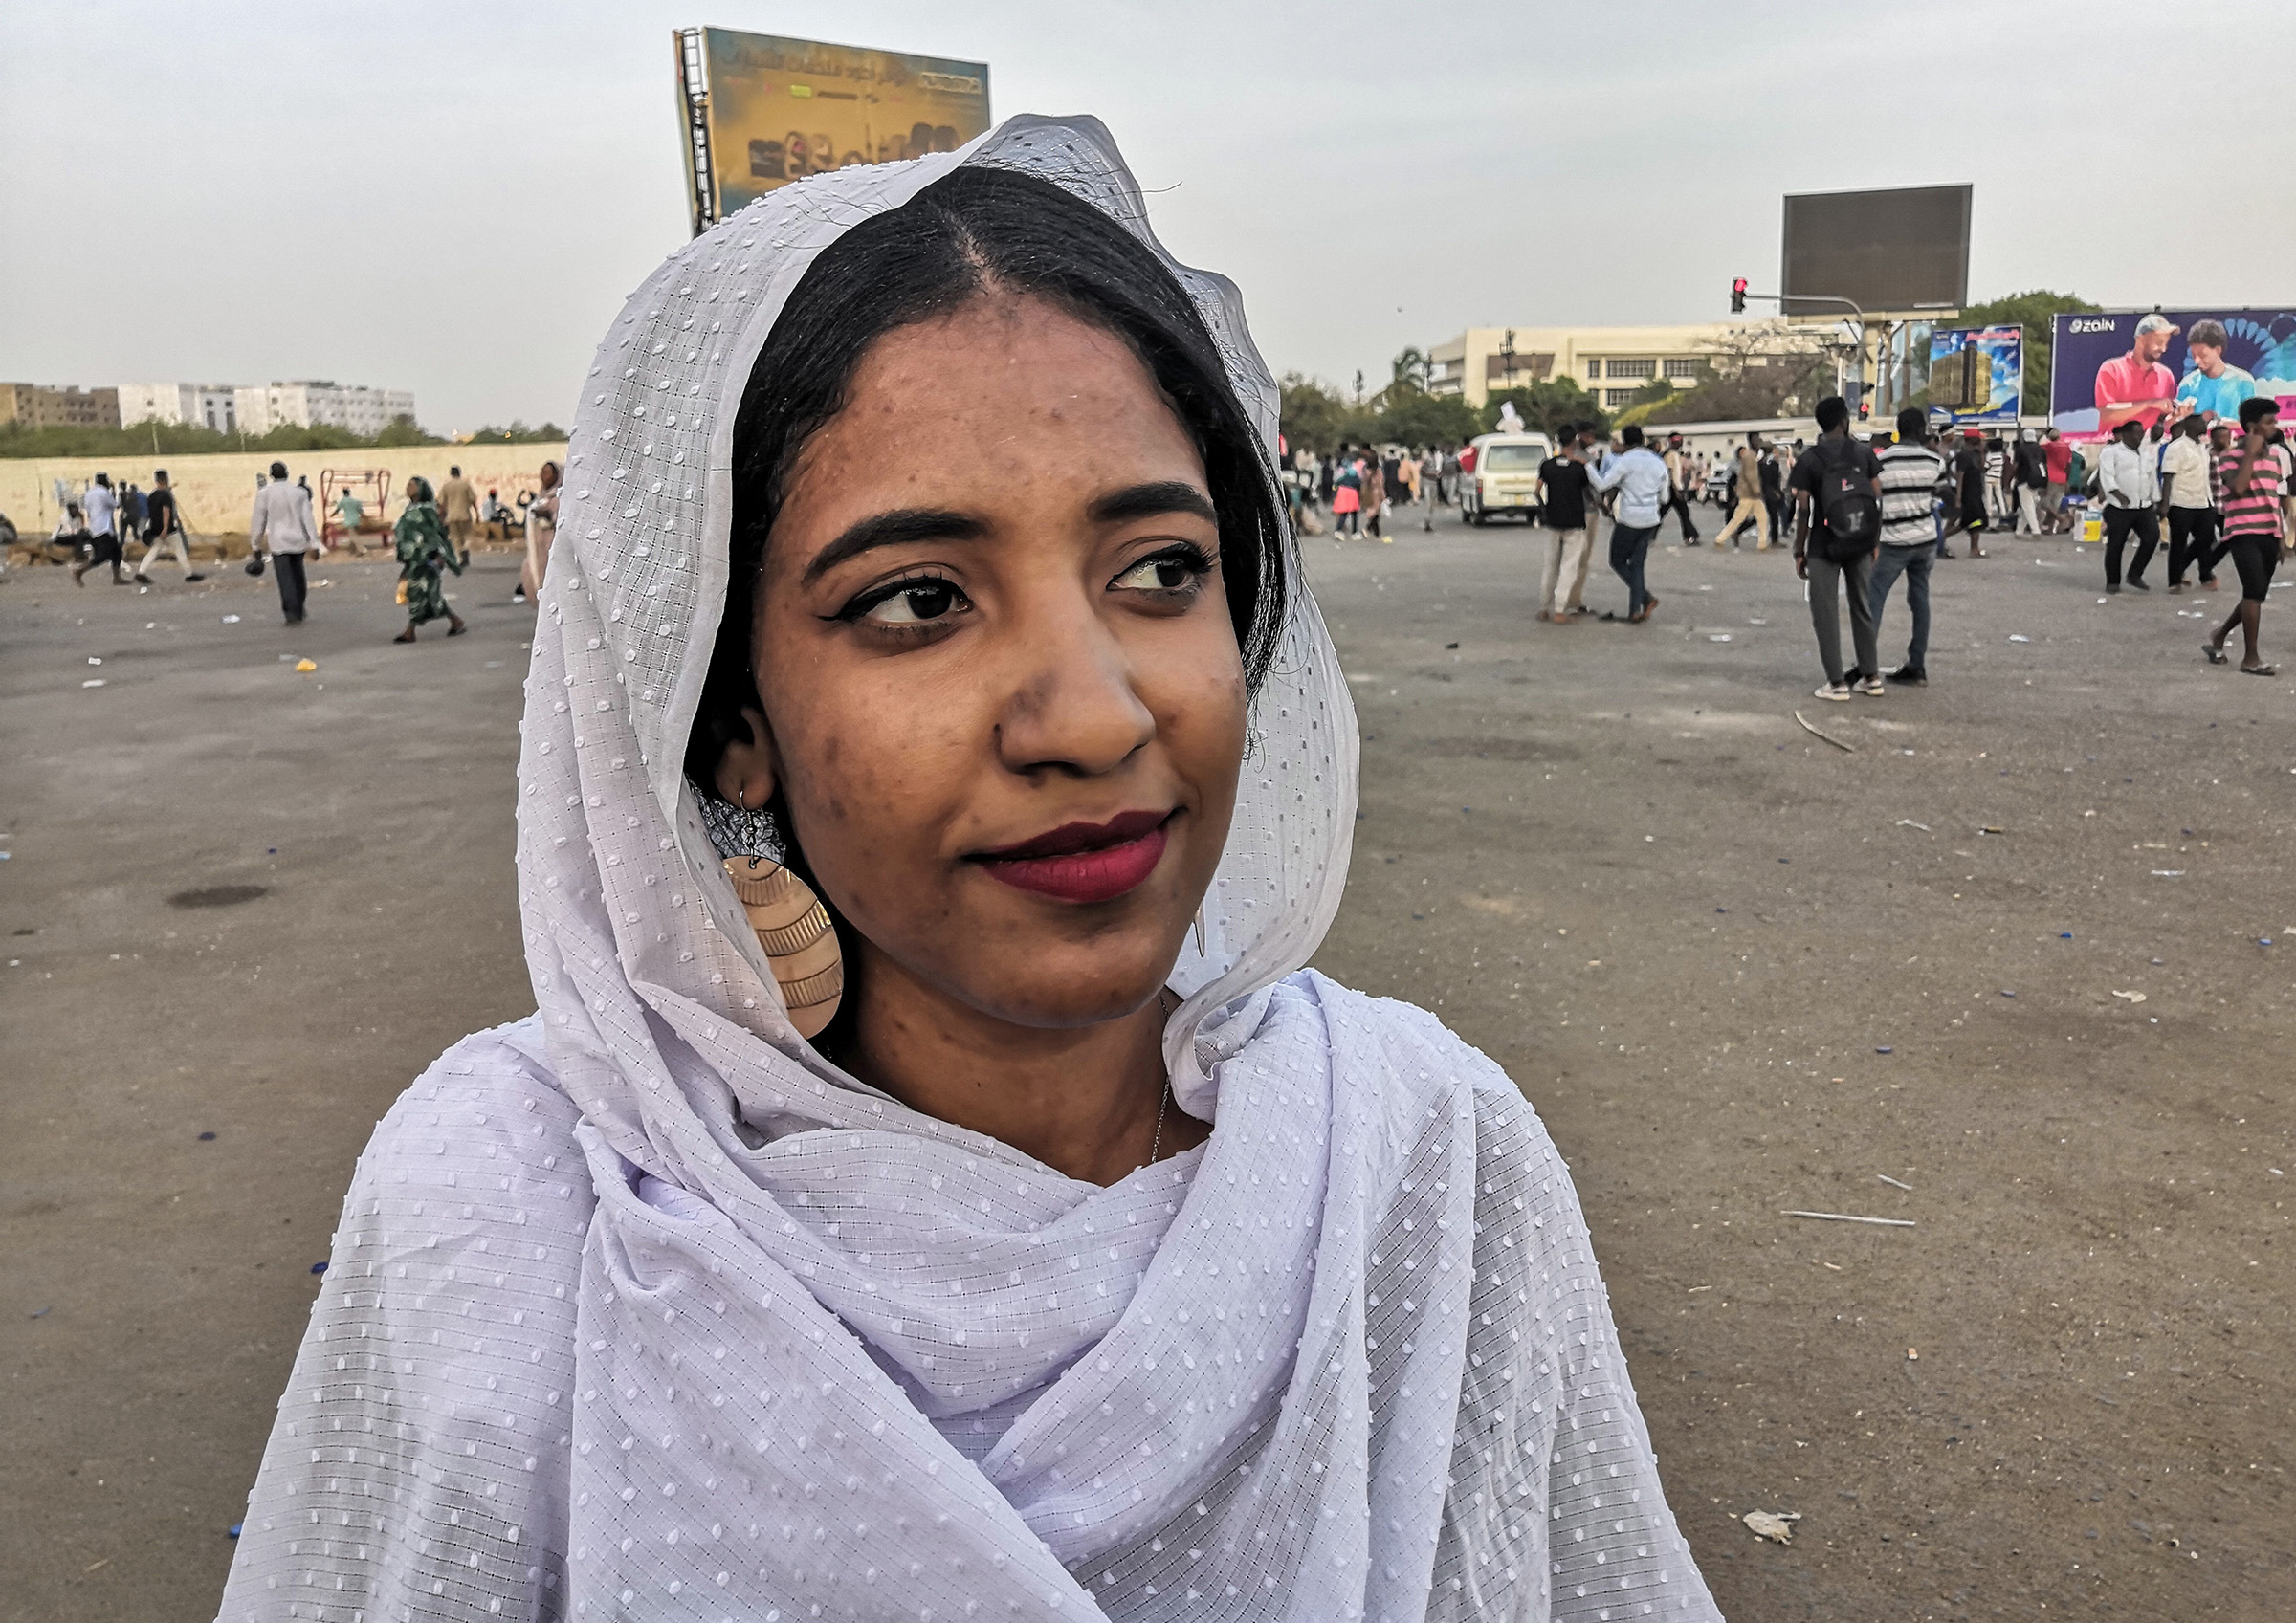 Alaa Salah, a Sudanese woman propelled to internet fame after clips went viral of her leading powerful protest chants against President Omar al-Bashir, attends a demonstration in front of the military headquarters in the capital Khartoum on April 10, 2019.